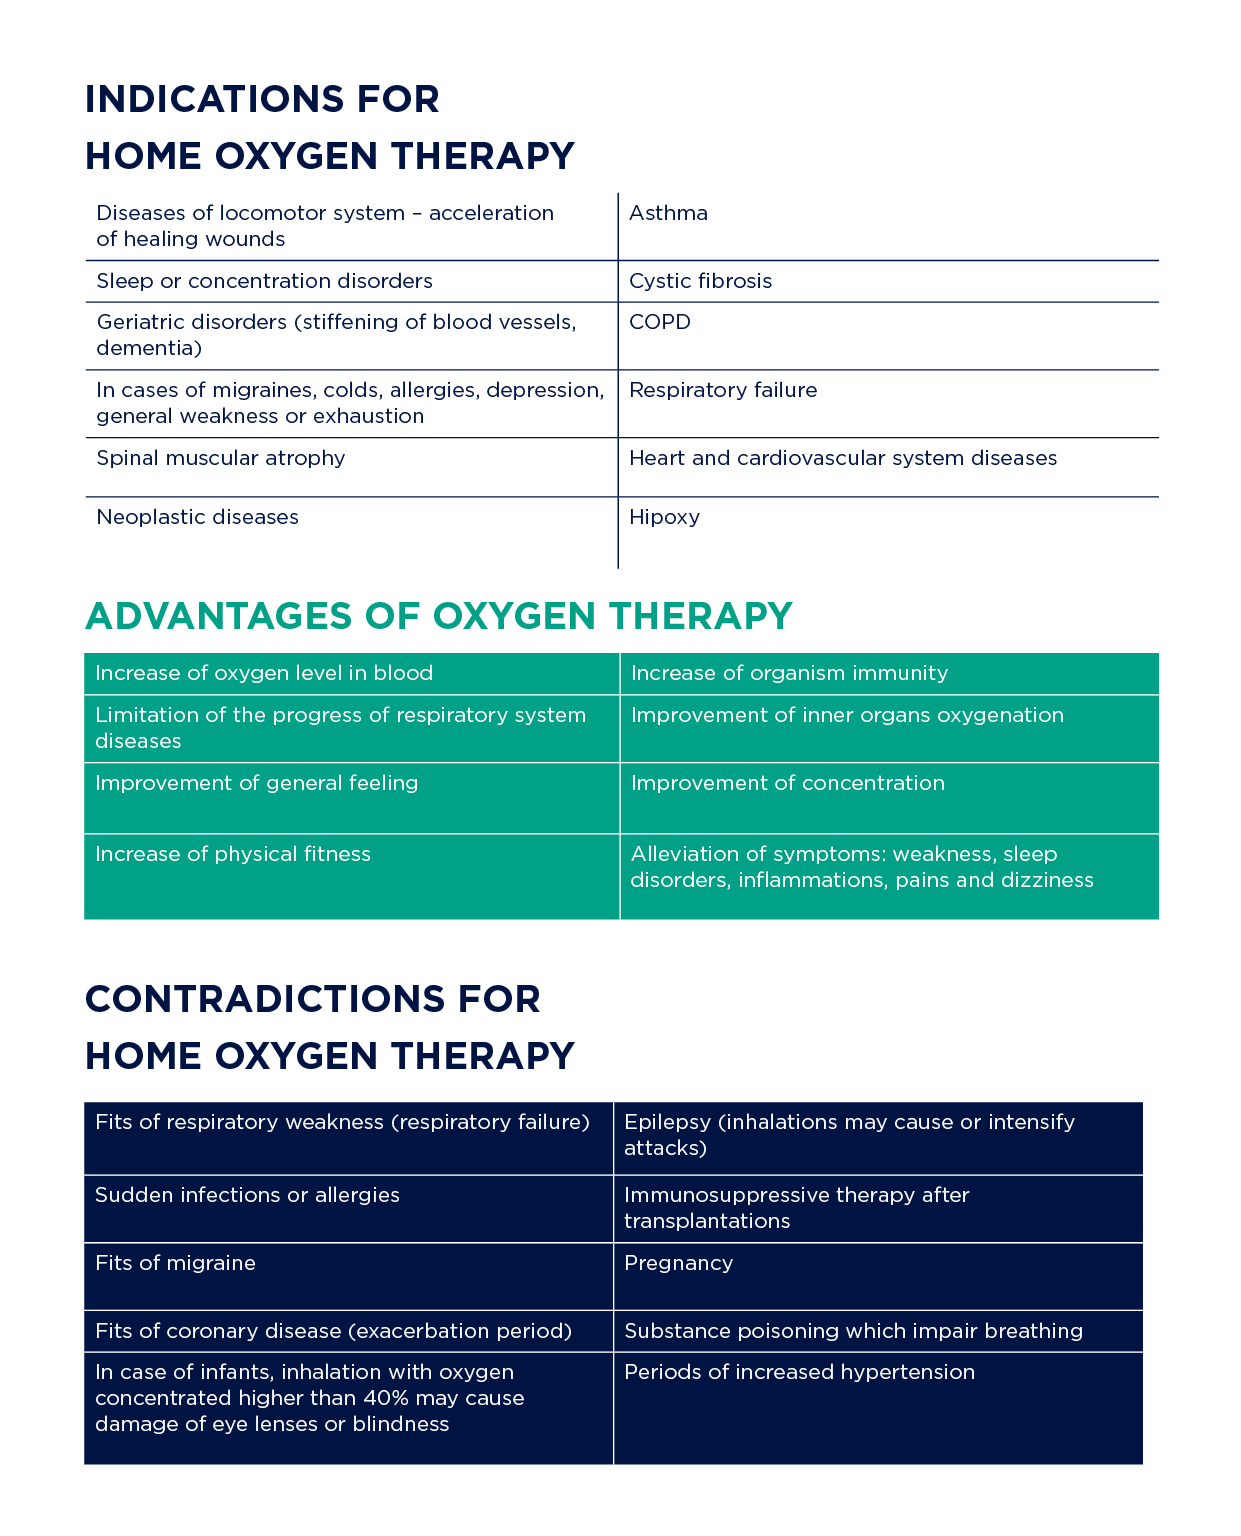 Home Oxygen Therapy Is Used Frequently In Treating The Diseases Characterized By Chronic Progressive Hypoxia Deficiency